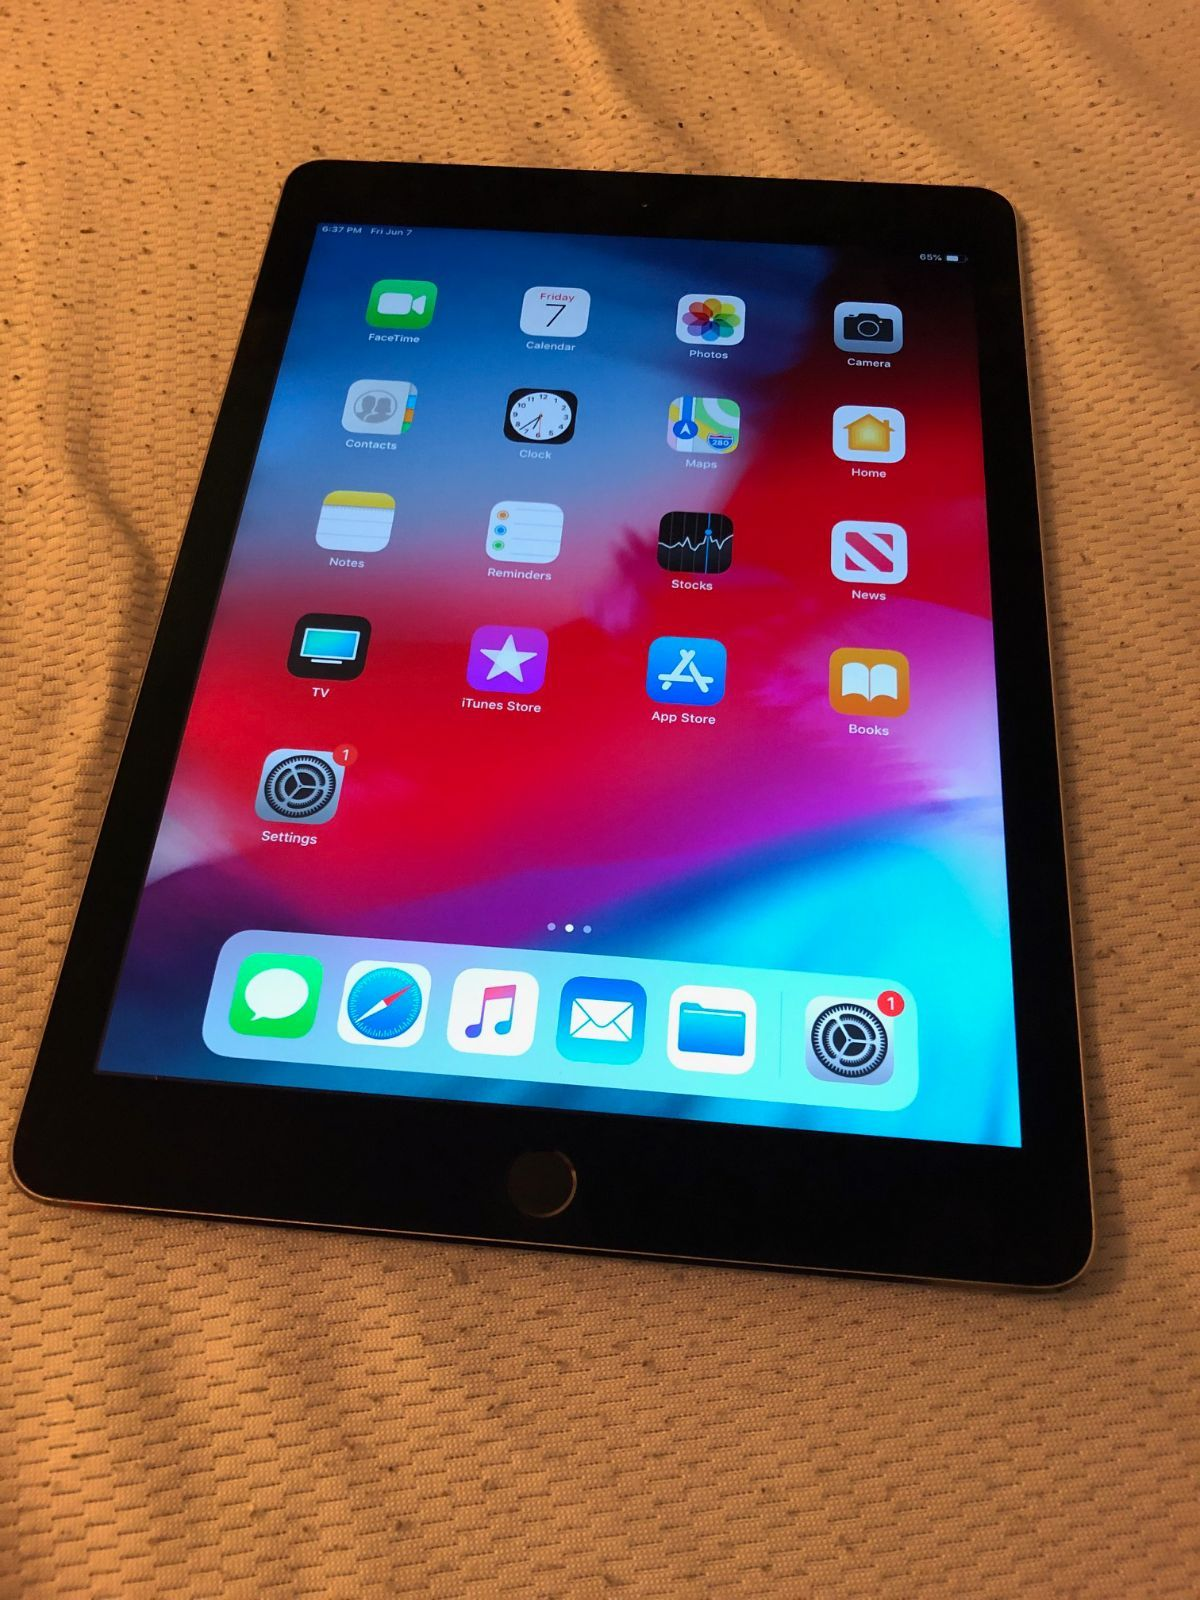 Ipad Air 2 64gb Wifi Plus Cellular Takes Any Sim Card You Want Works Perfect Nothing Wrong With It At All Great Condition Comes With A Bran Ipad Air 2 Ipad Air Ipad